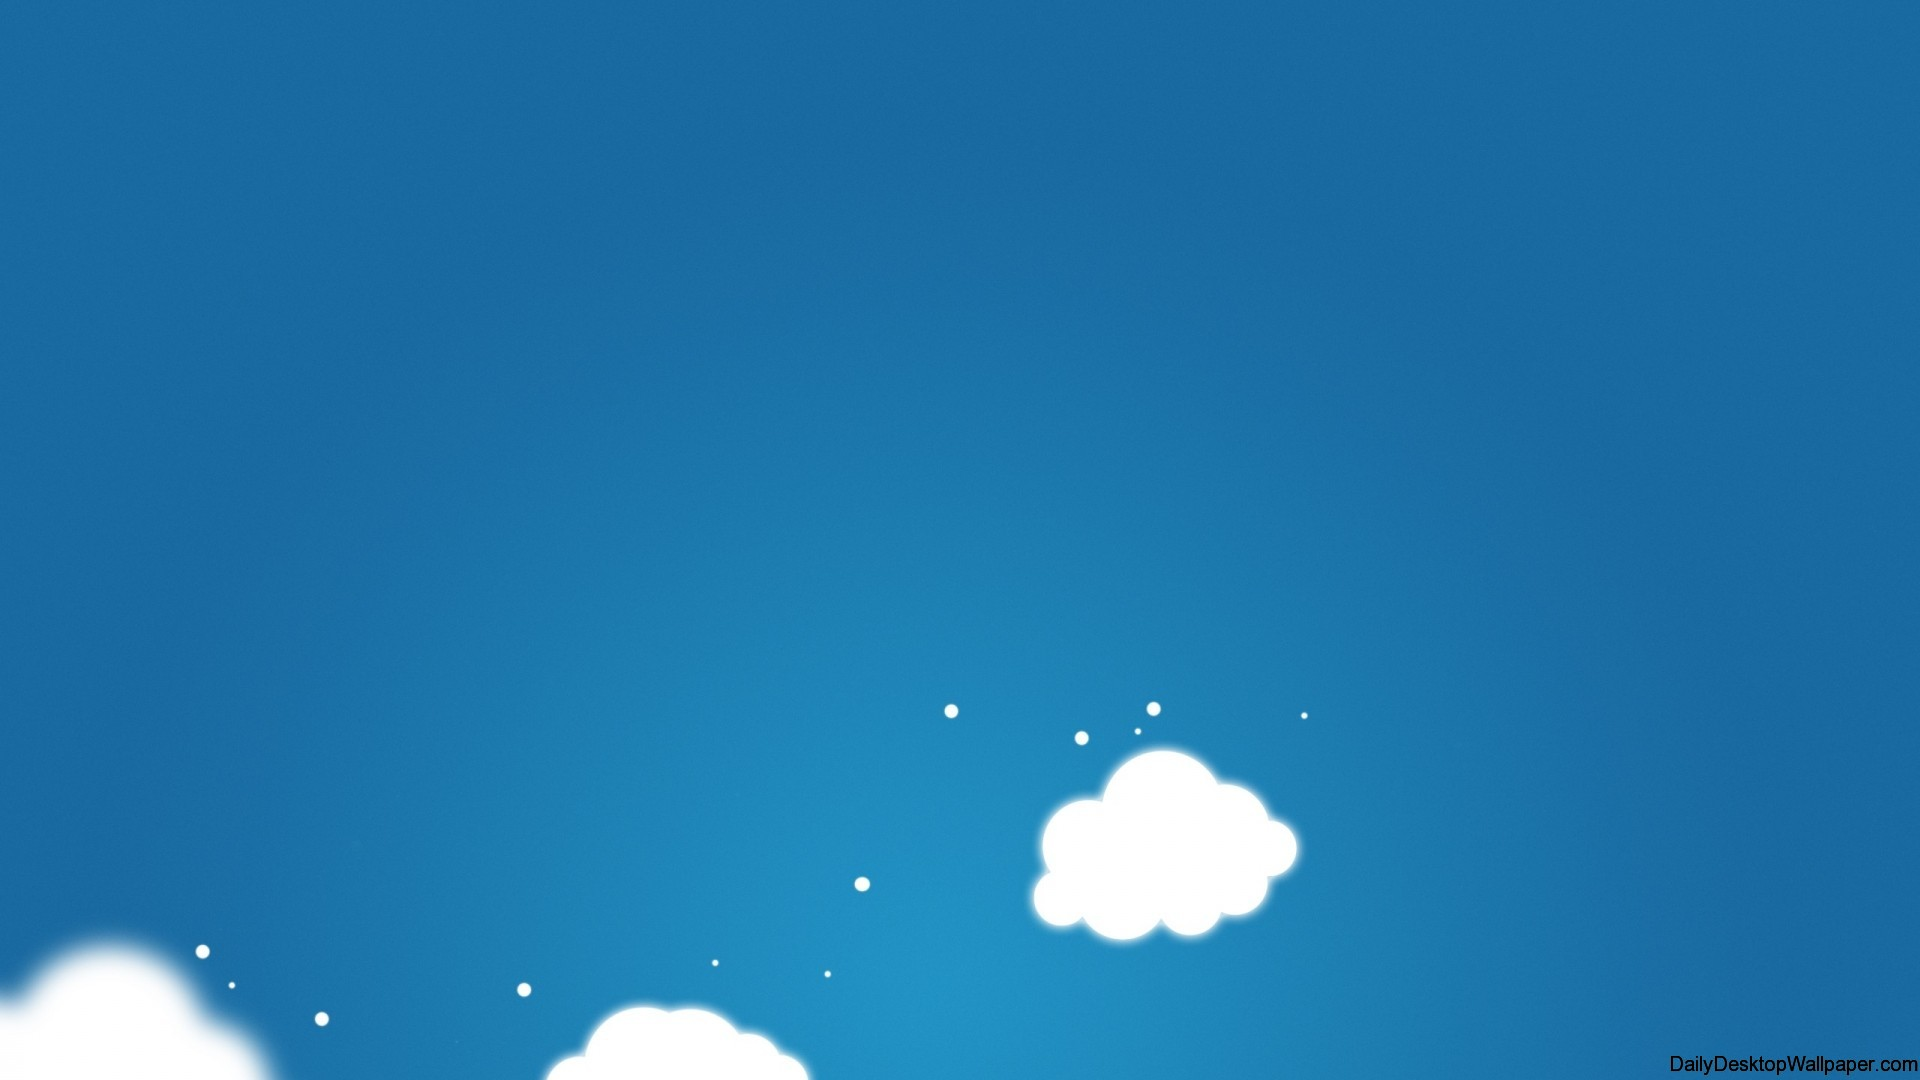 Minimal cartoon cloud wallpaper